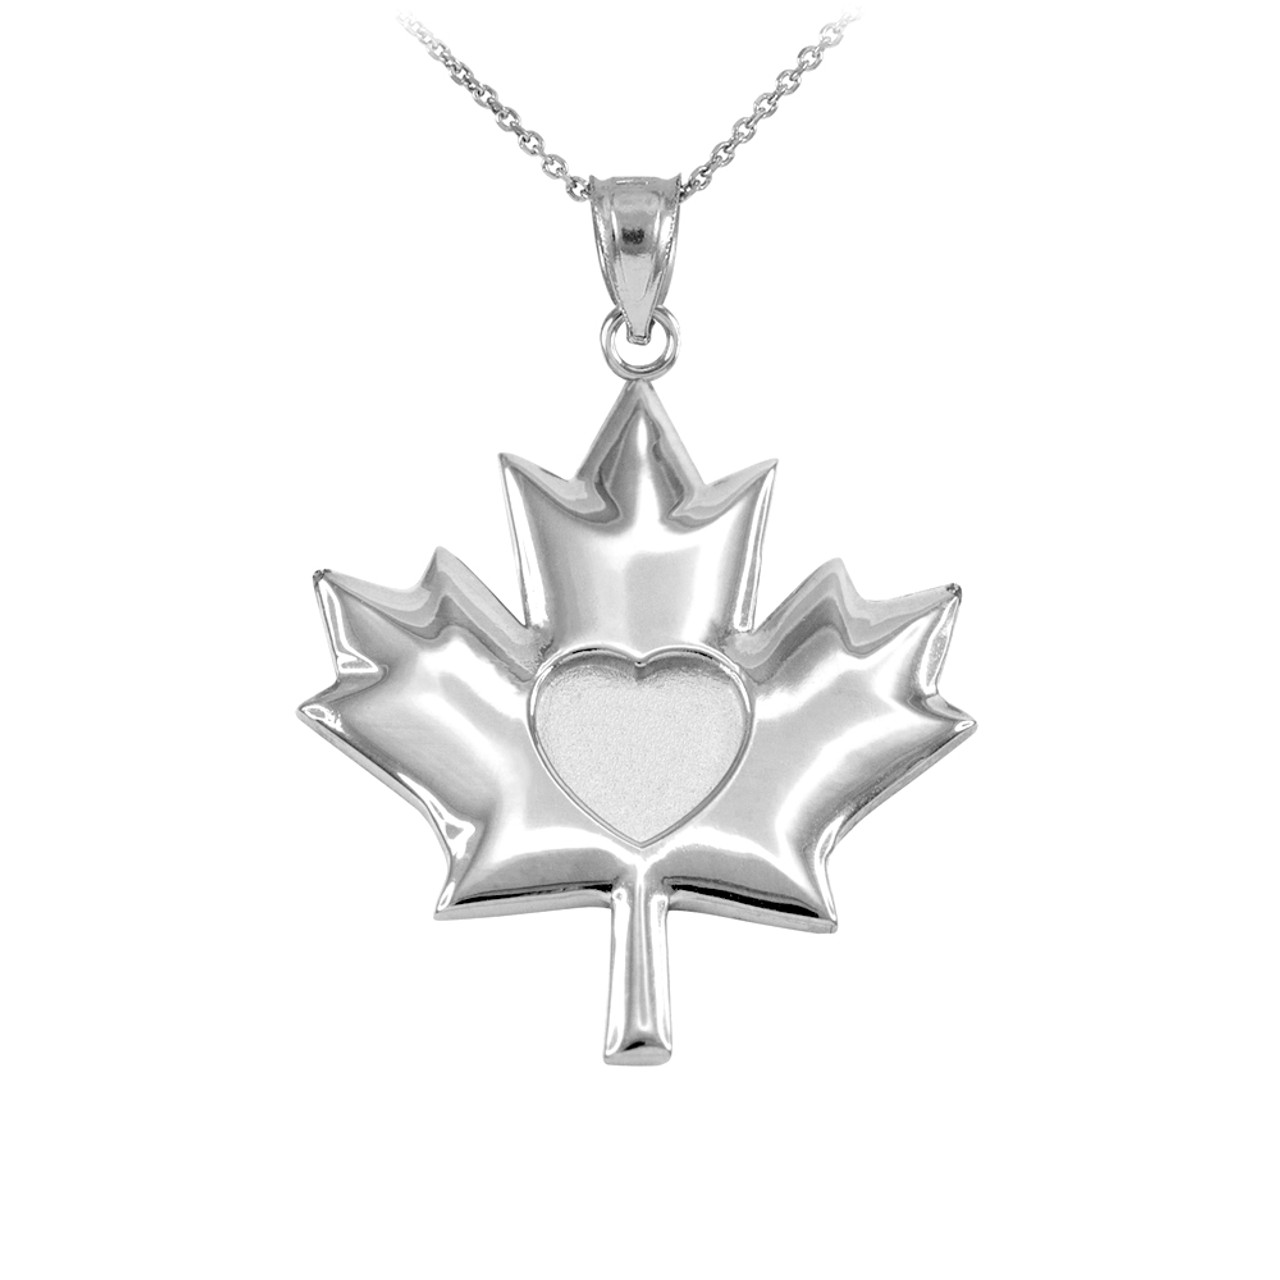 Solid 925 sterling silver heart maple leaf pendant necklace aloadofball Gallery